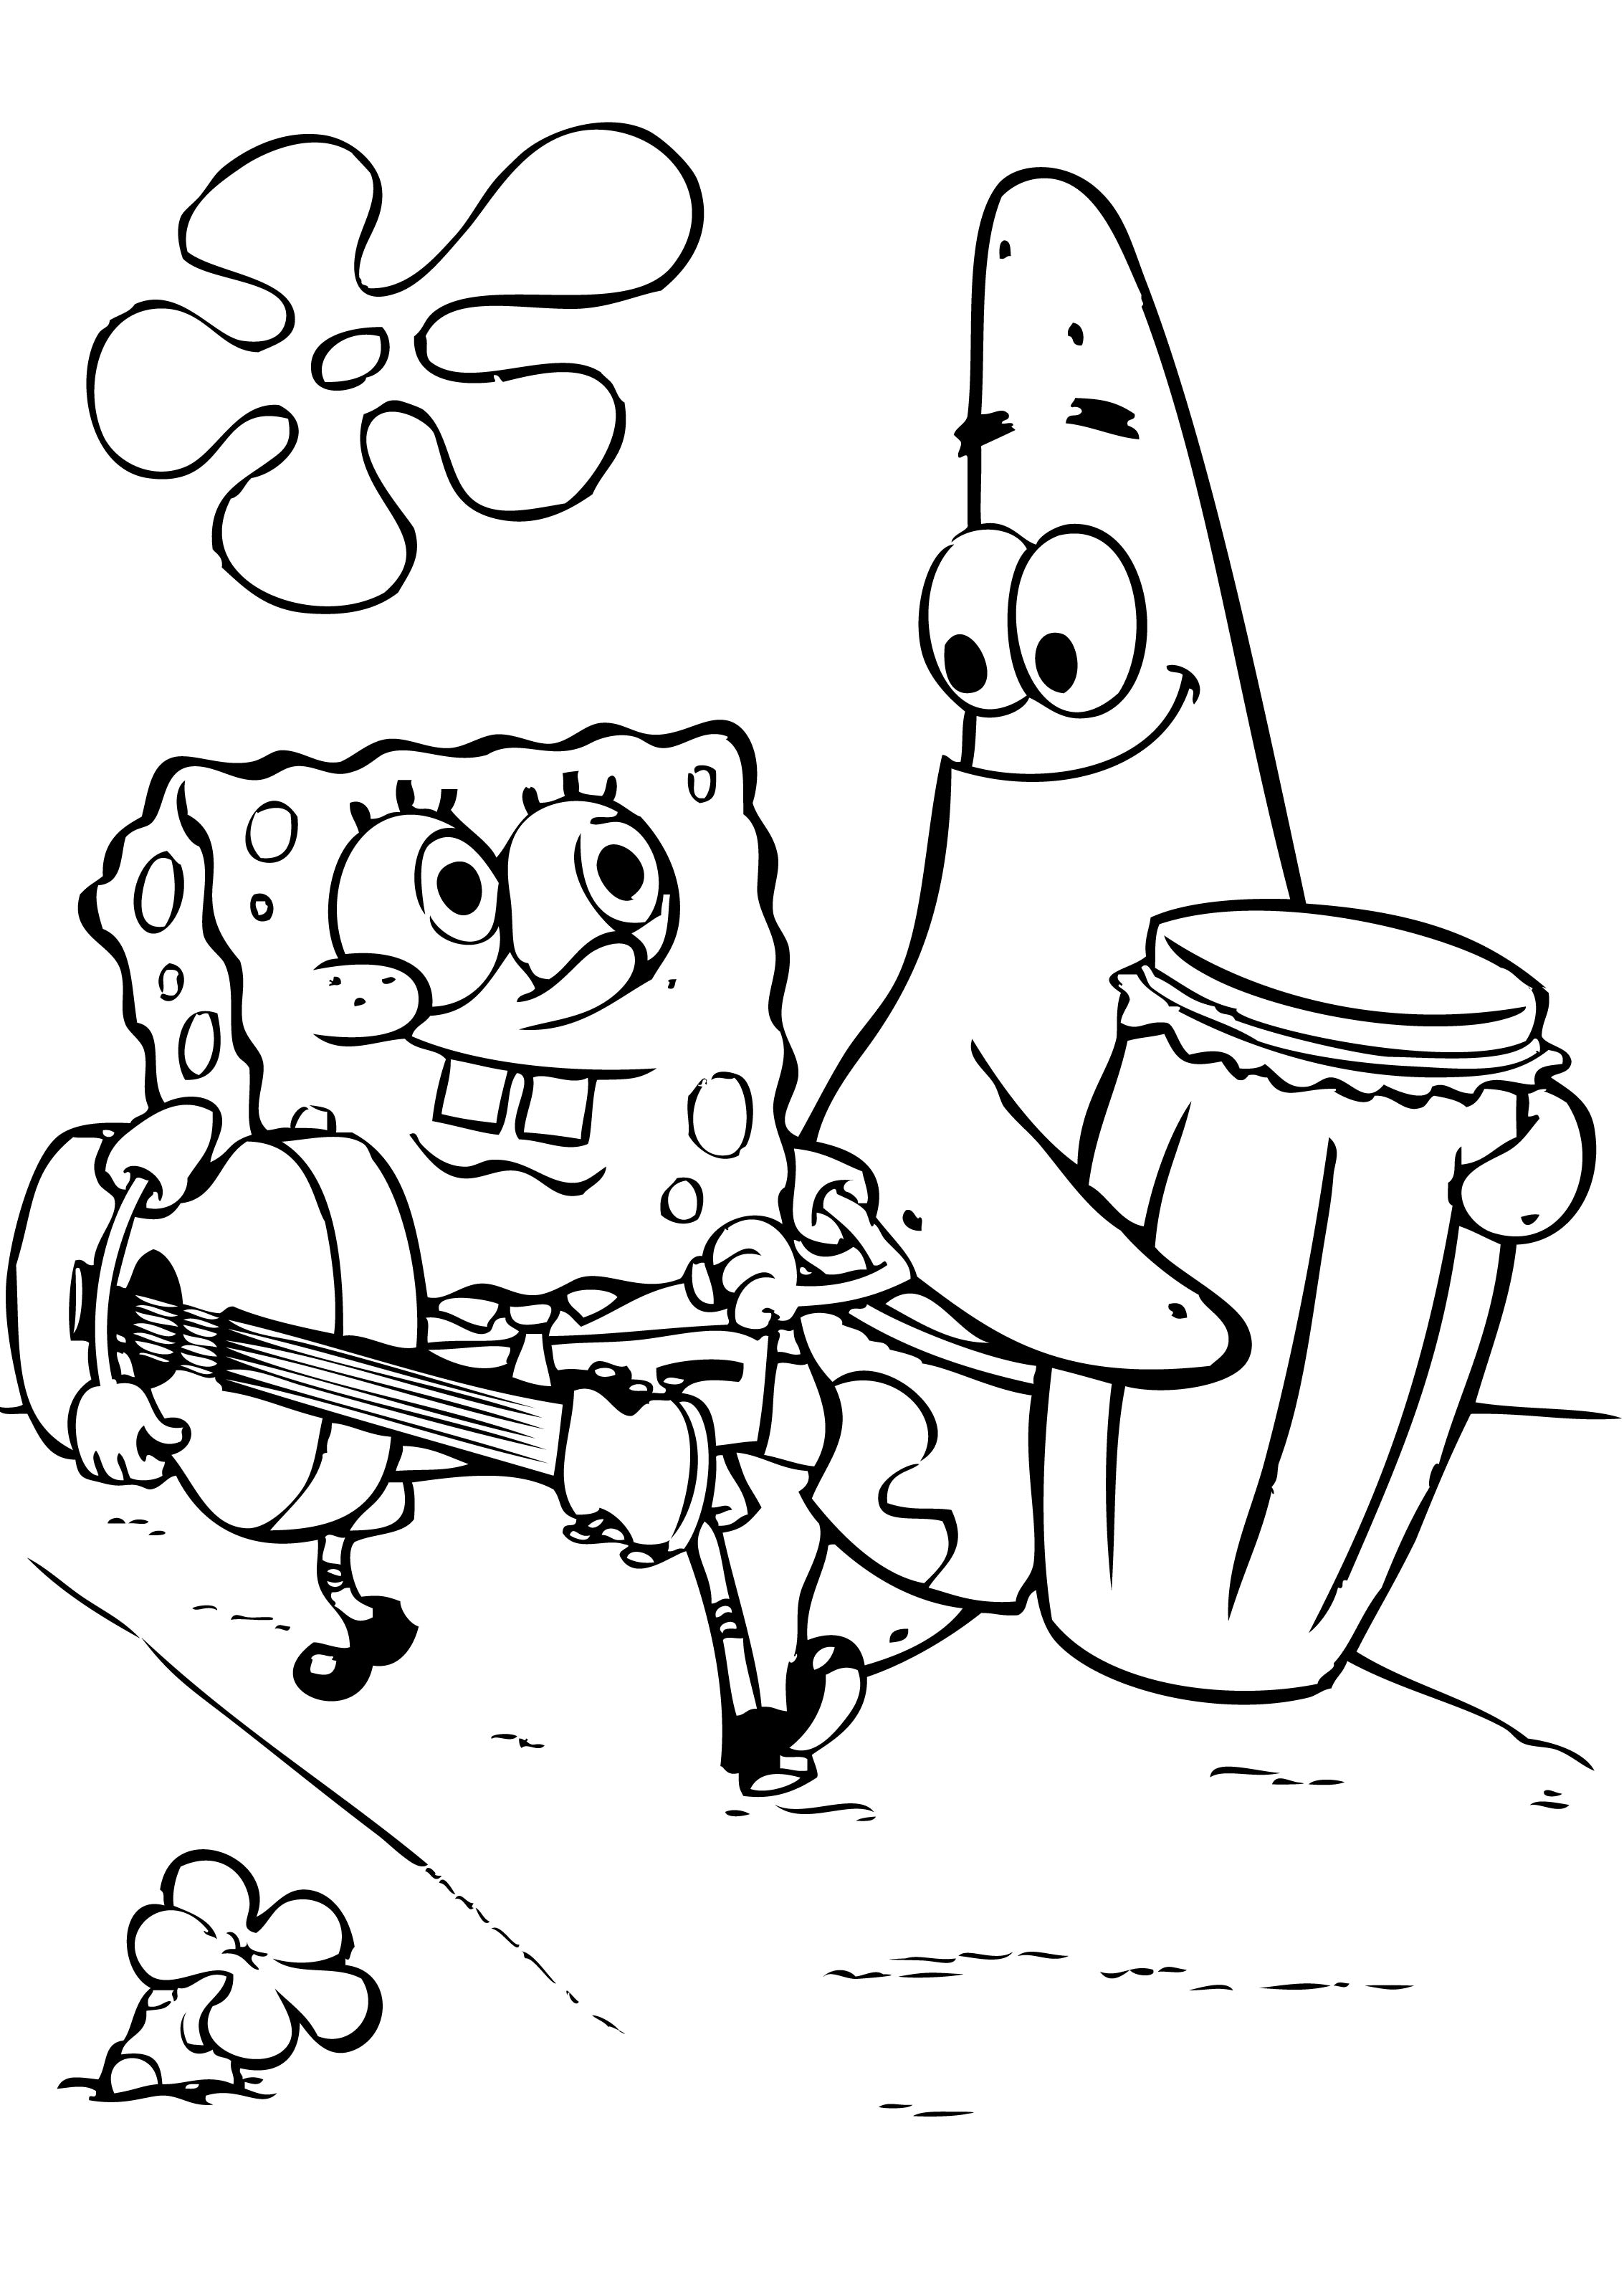 Spongebob And Patrick Drawing at GetDrawings.com | Free for personal ...